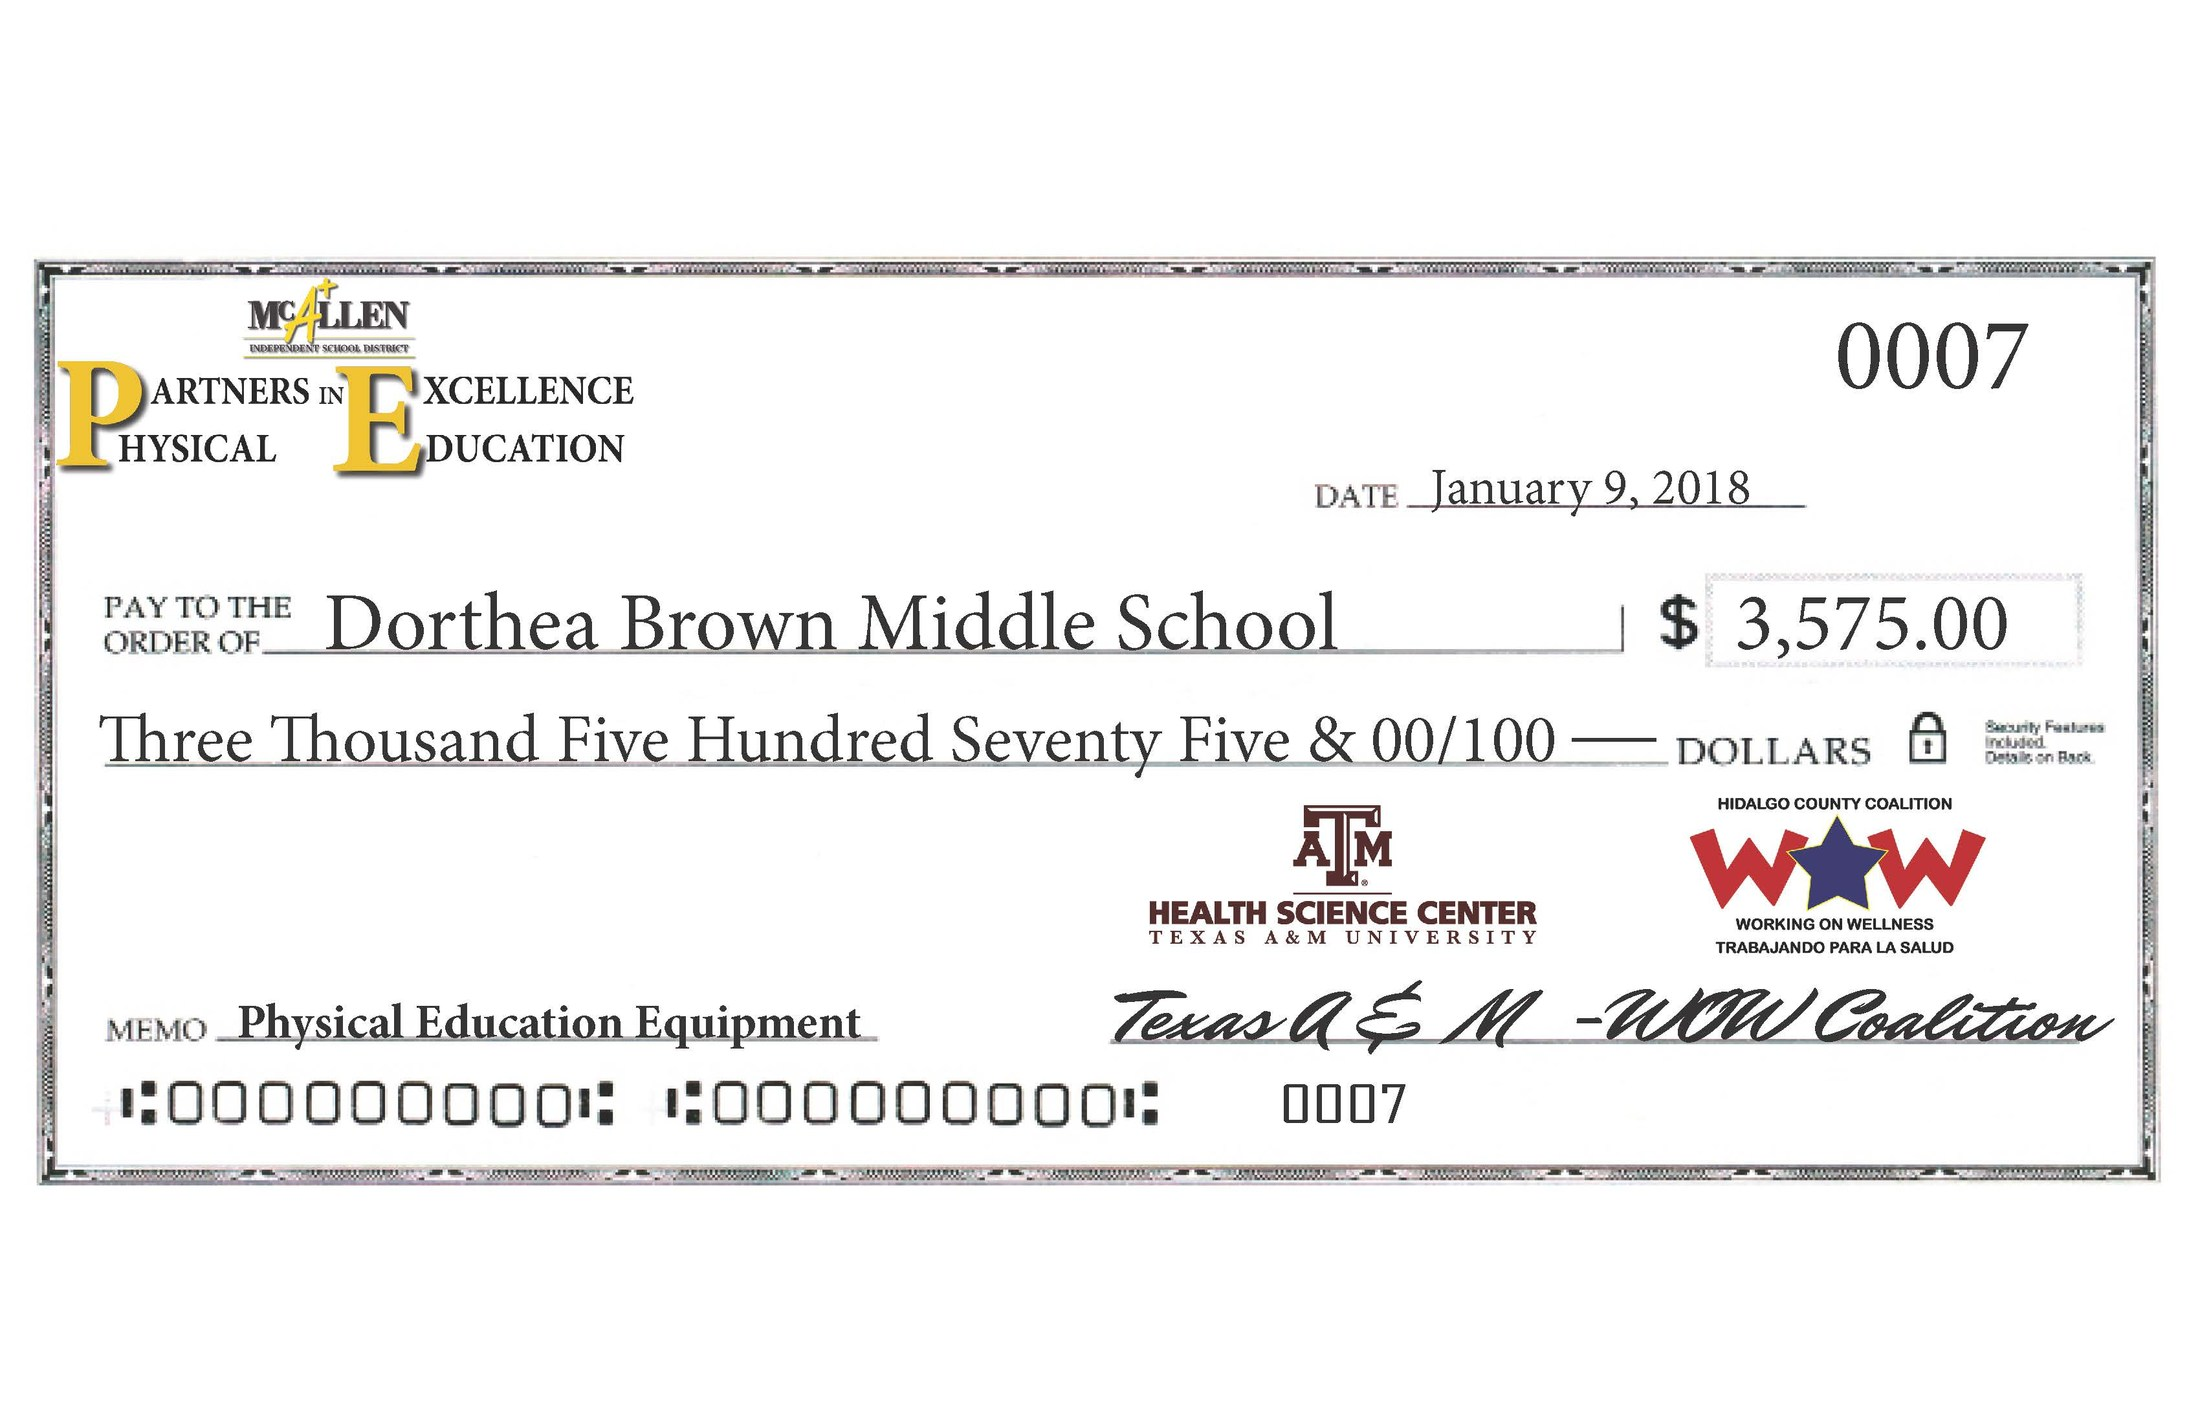 Thank you - Texas A&M - WOW Coalition!